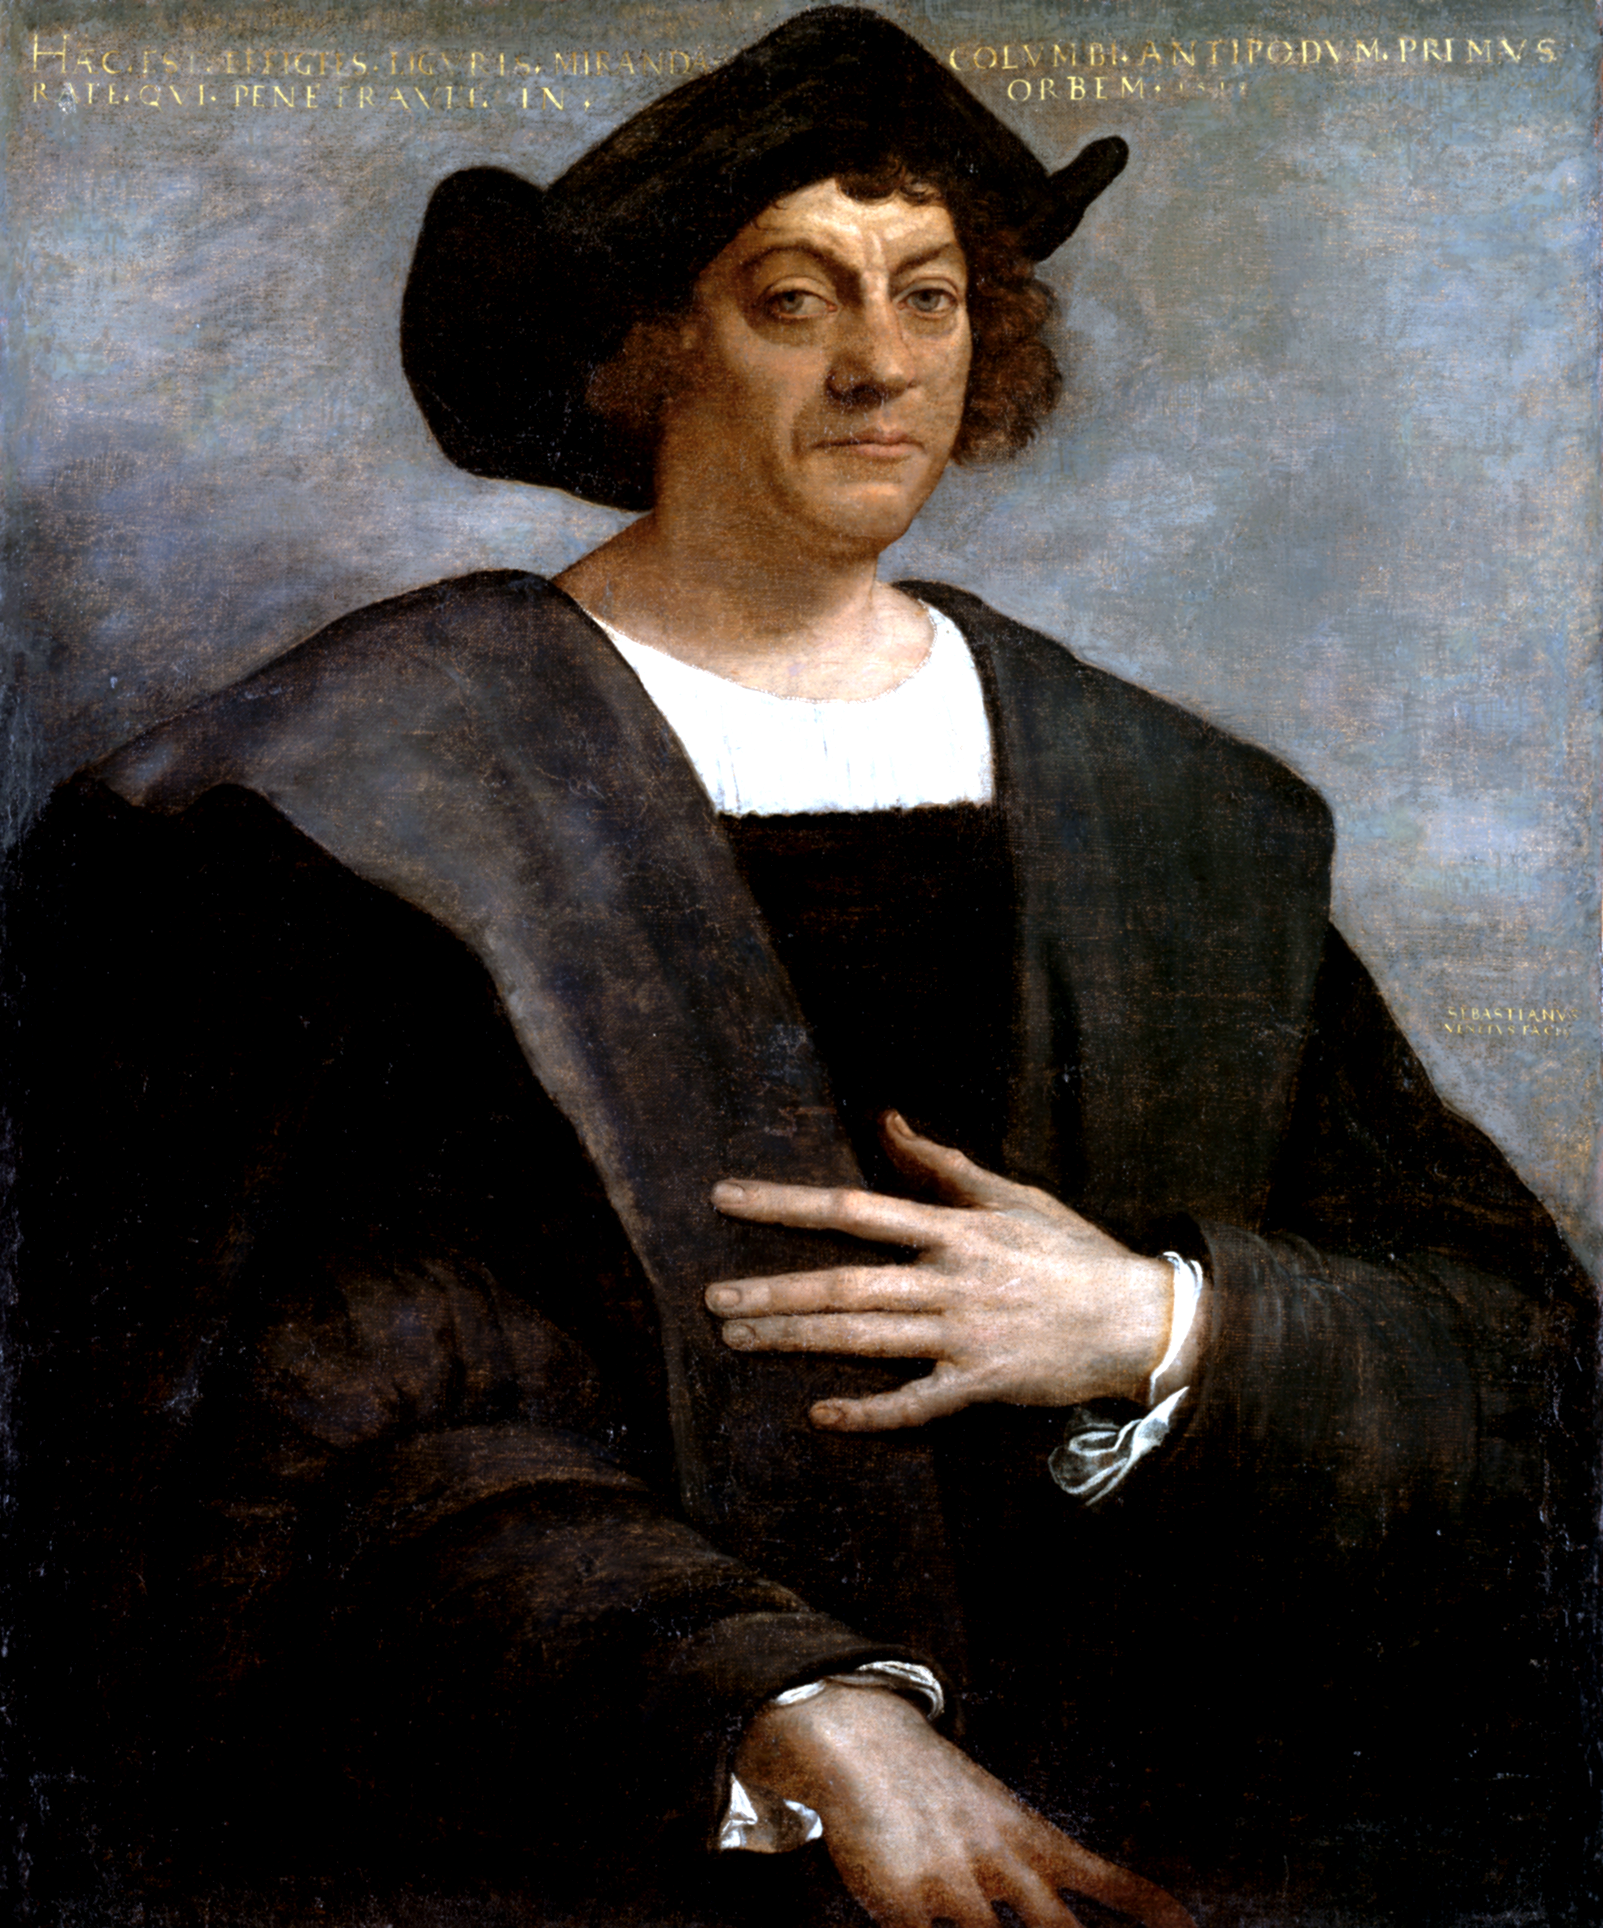 http://upload.wikimedia.org/wikipedia/commons/5/5d/Christopher_Columbus.PNG